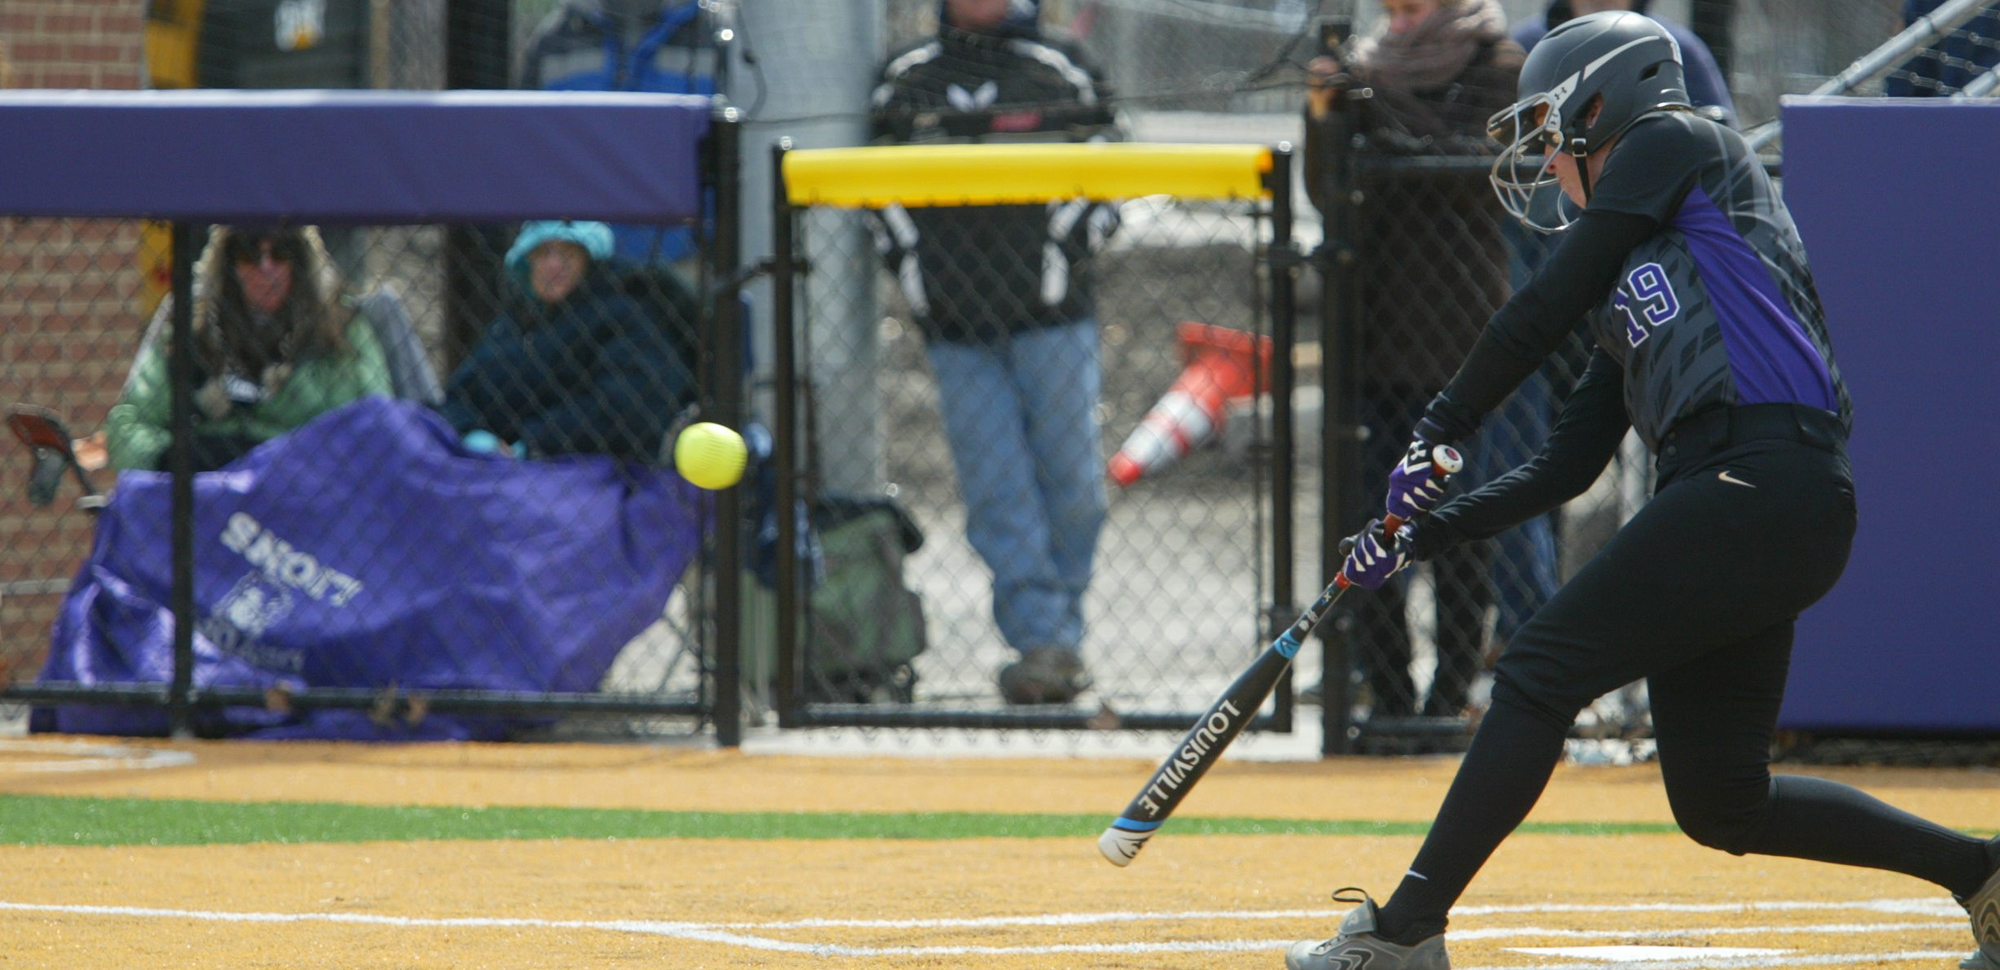 Anna Price drove in the game-winning run in the ninth inning of Saturday's nightcap at Catholic.